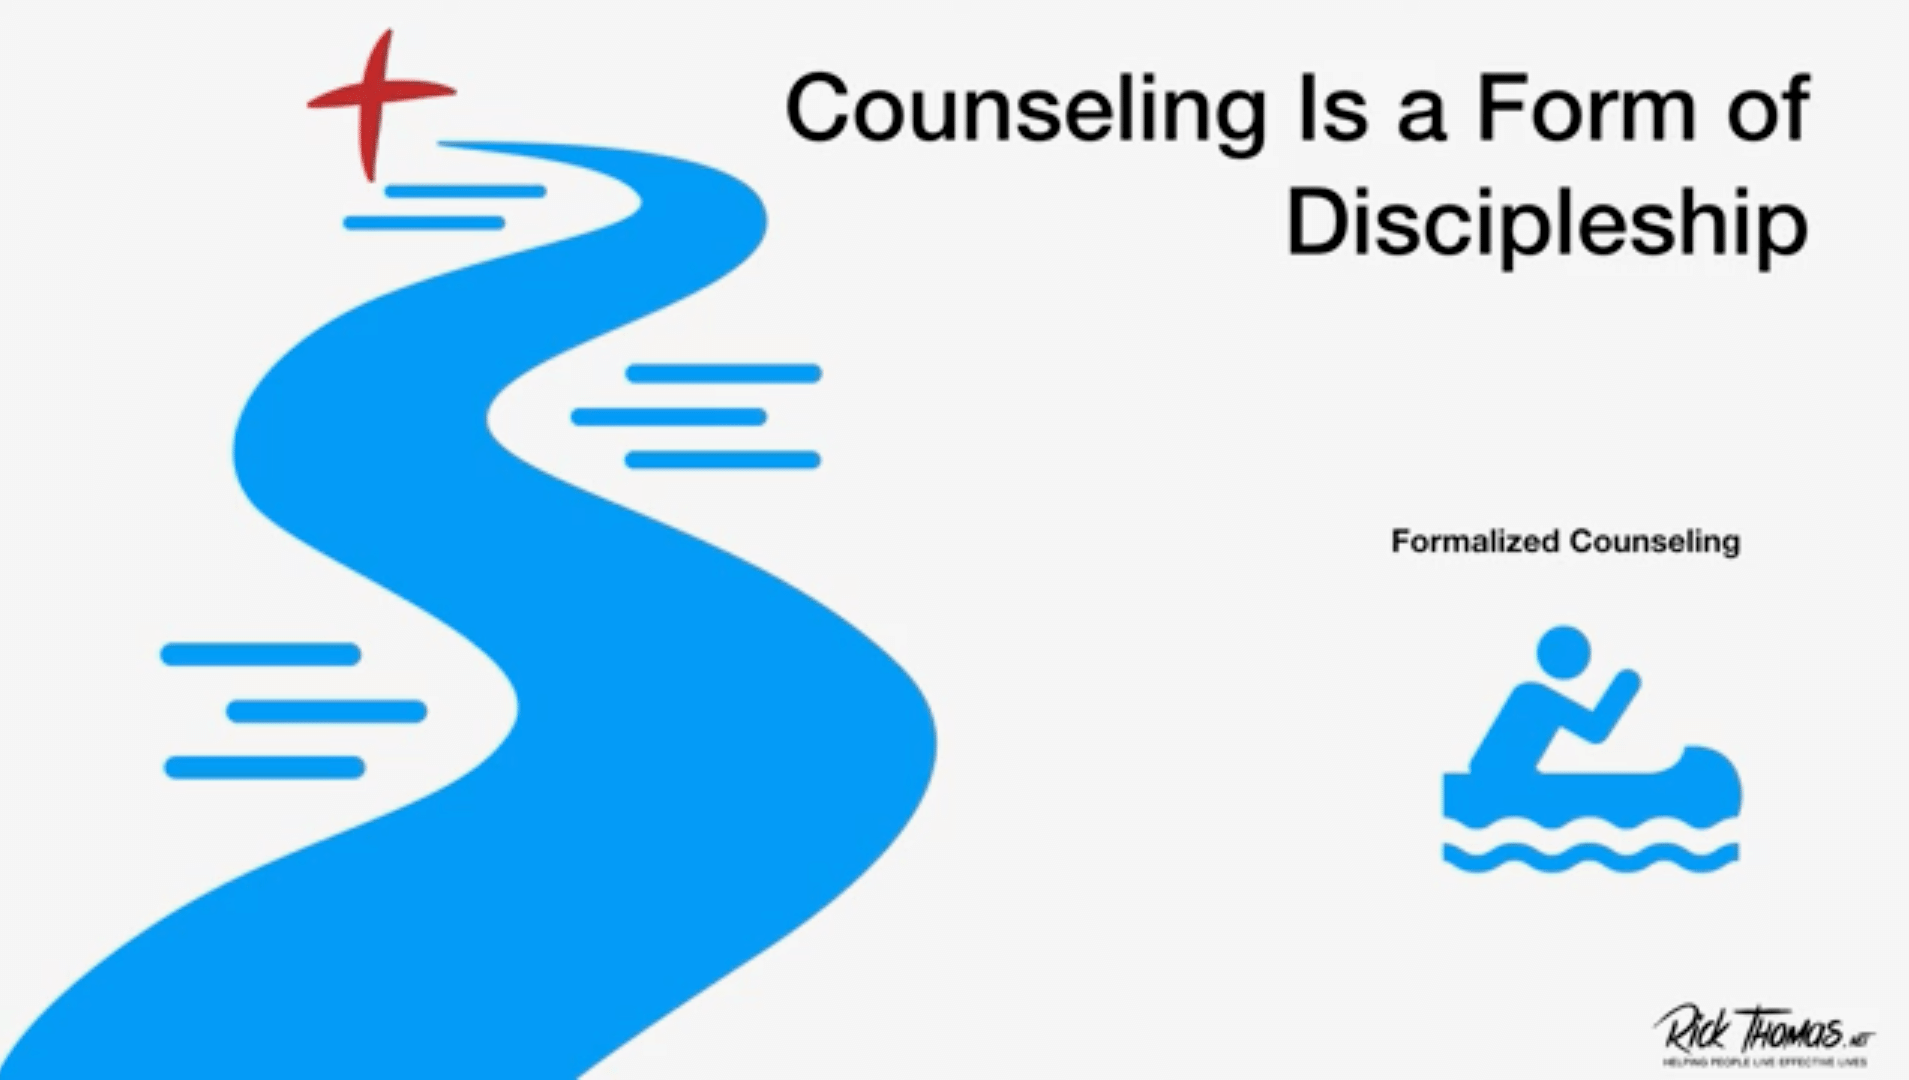 Video Channel Case for Counseling